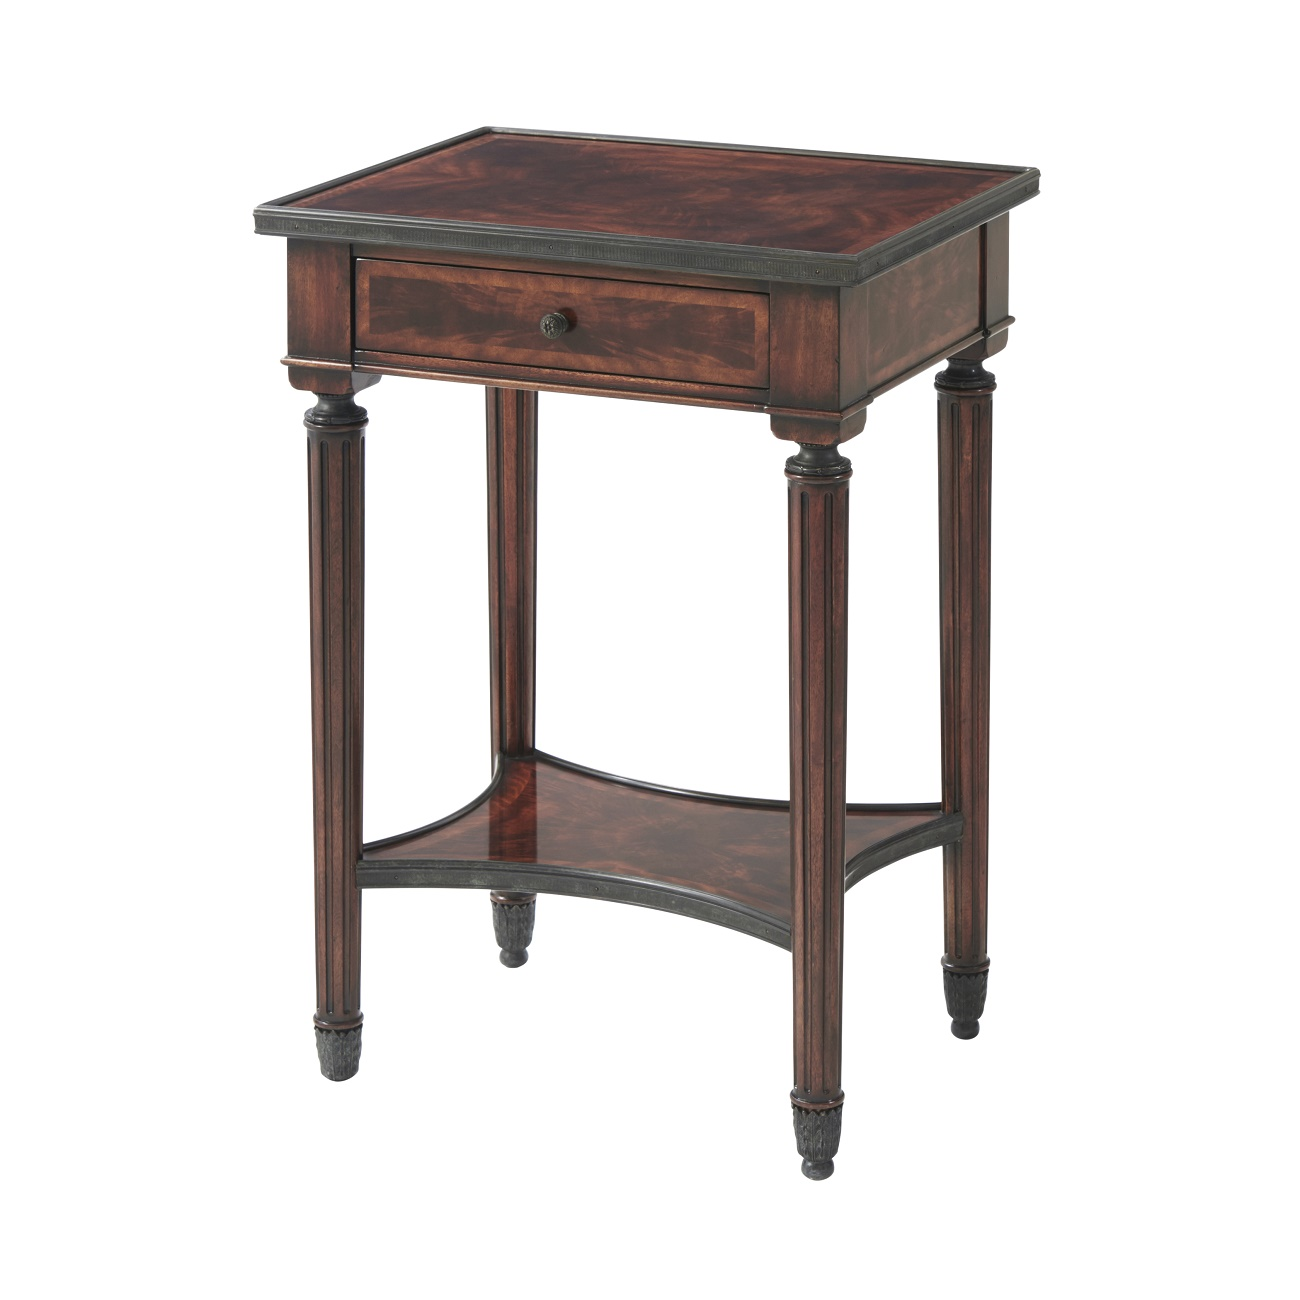 Theodore Alexander A Rural Rectory Accent Lamp Table Brooklyn, New York